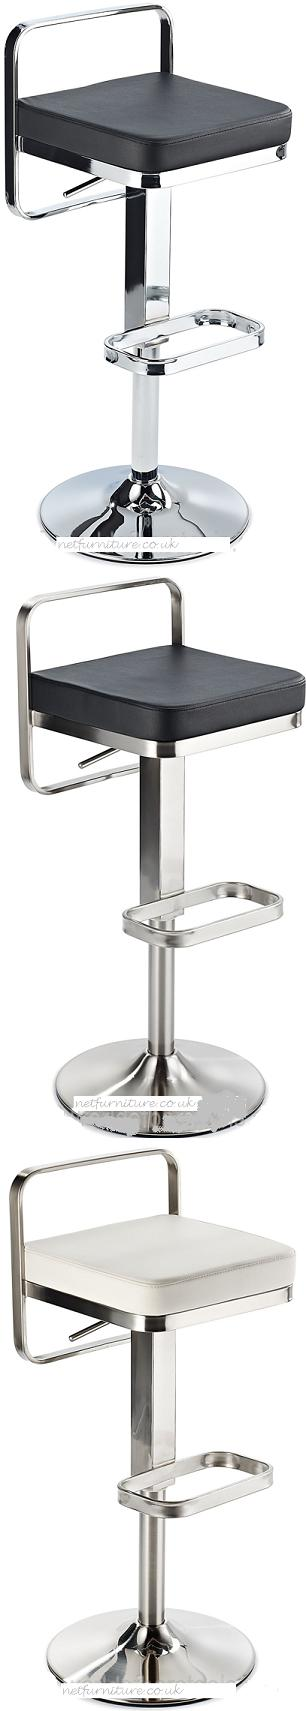 Sol Bar Stool - Adjustable